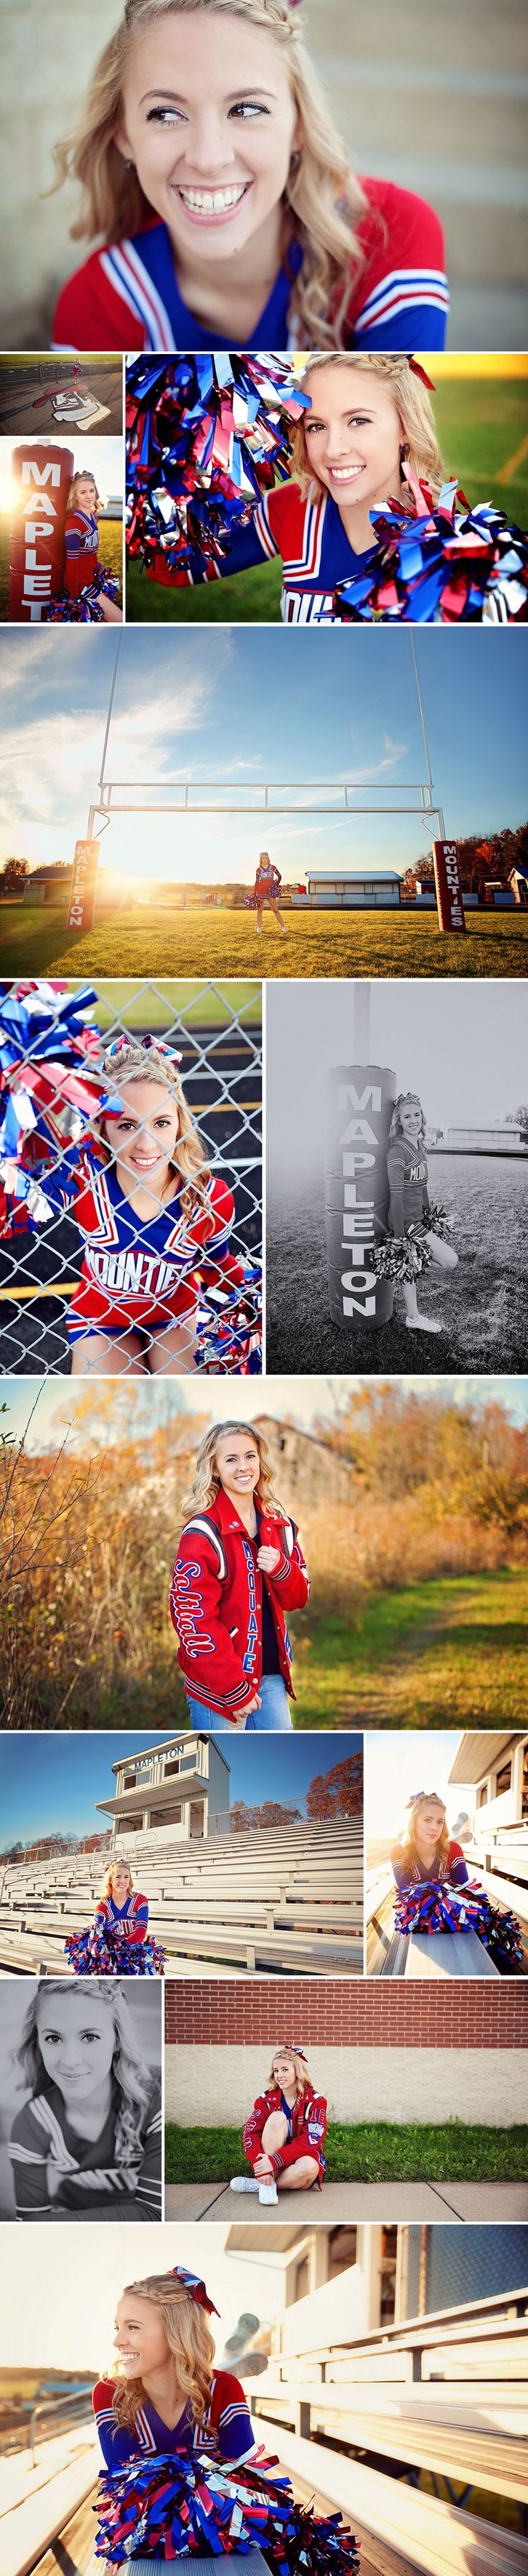 Cheerleading Senior Photo Ideas - Ashland Ohio Senior Photography - The Picture Show